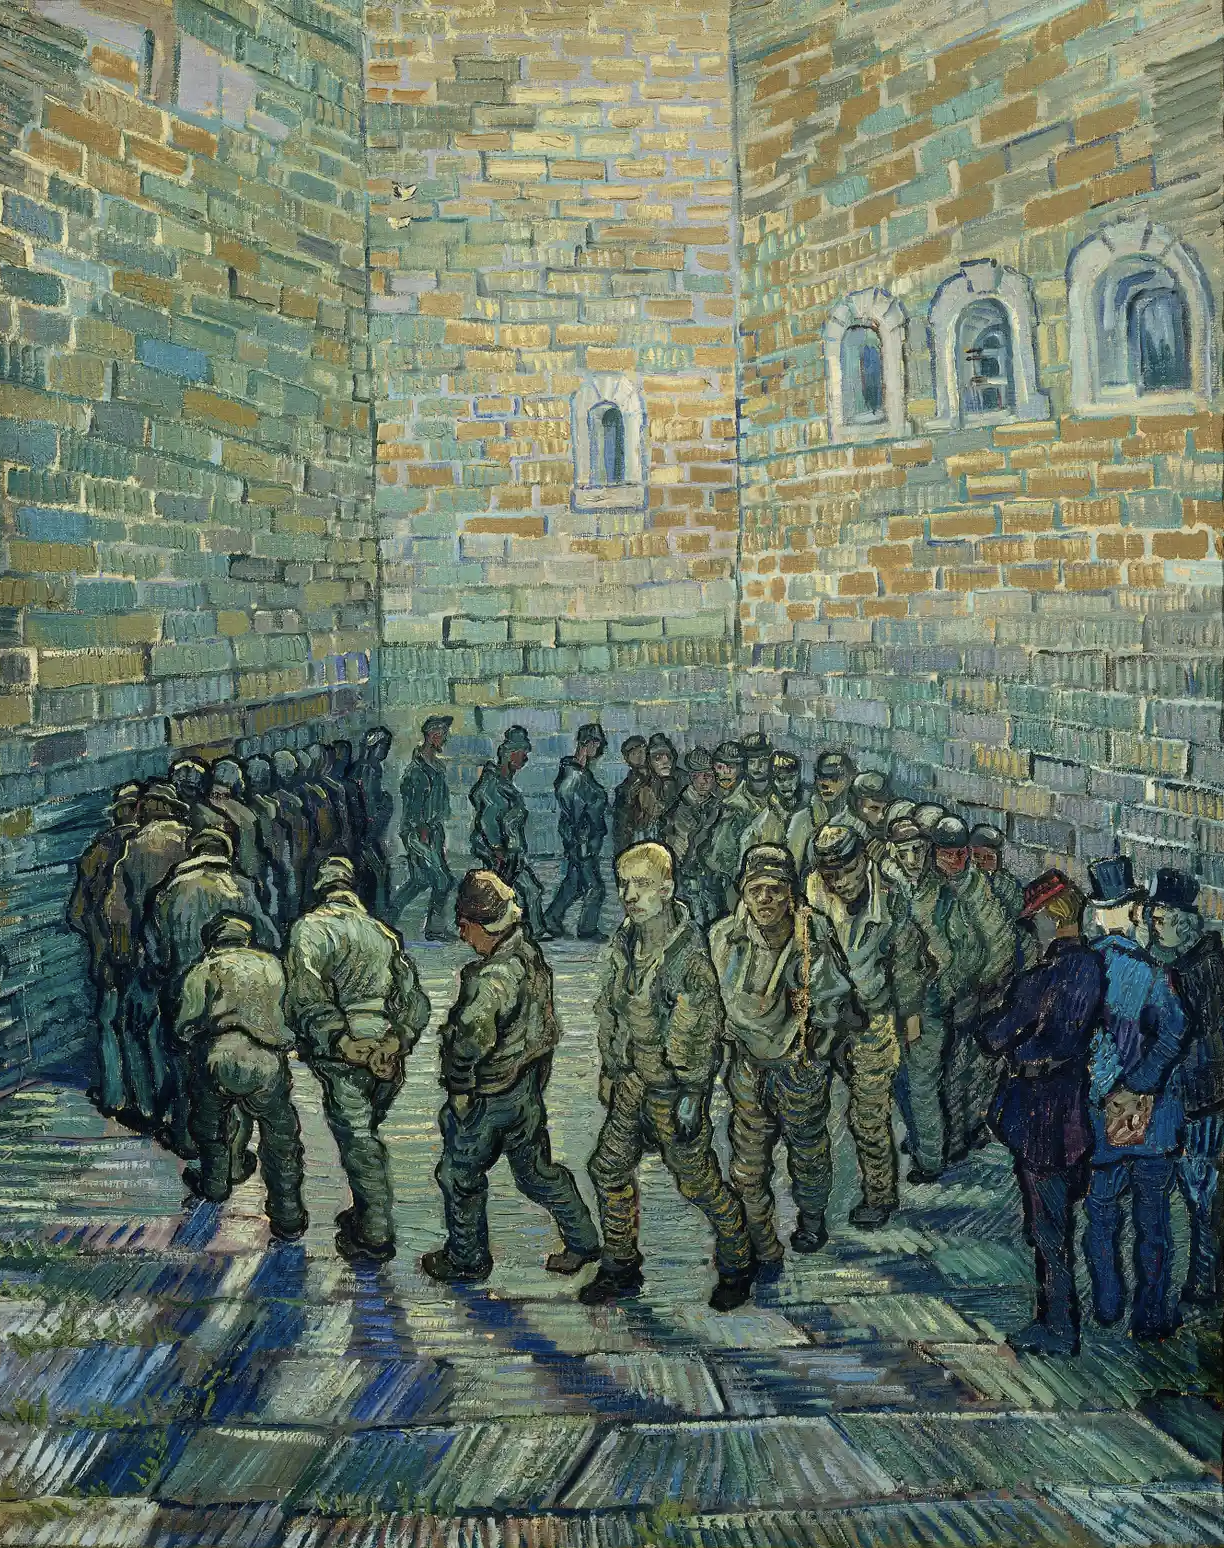 Vincent van Gogh's Prisoners Exercising, 1890 © The Pushkin State Museum of Fine Arts, Moscow